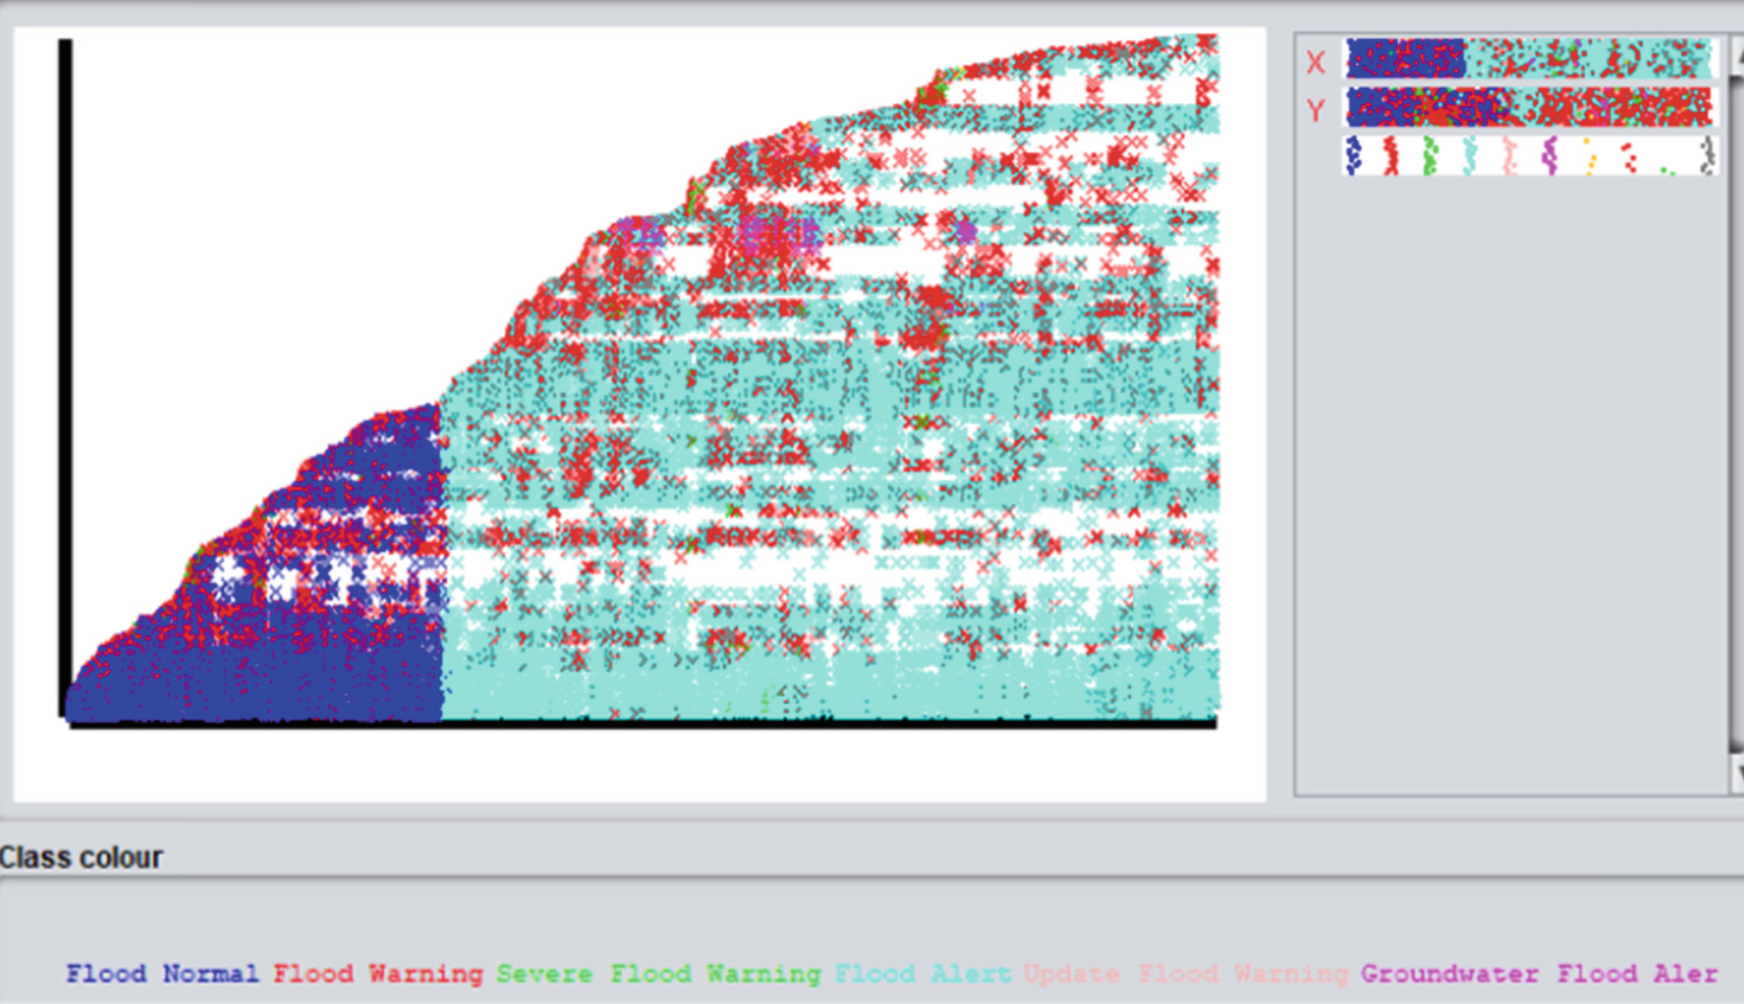 A Real-Time Flood Detection System Based on Machine Learning Algorithms